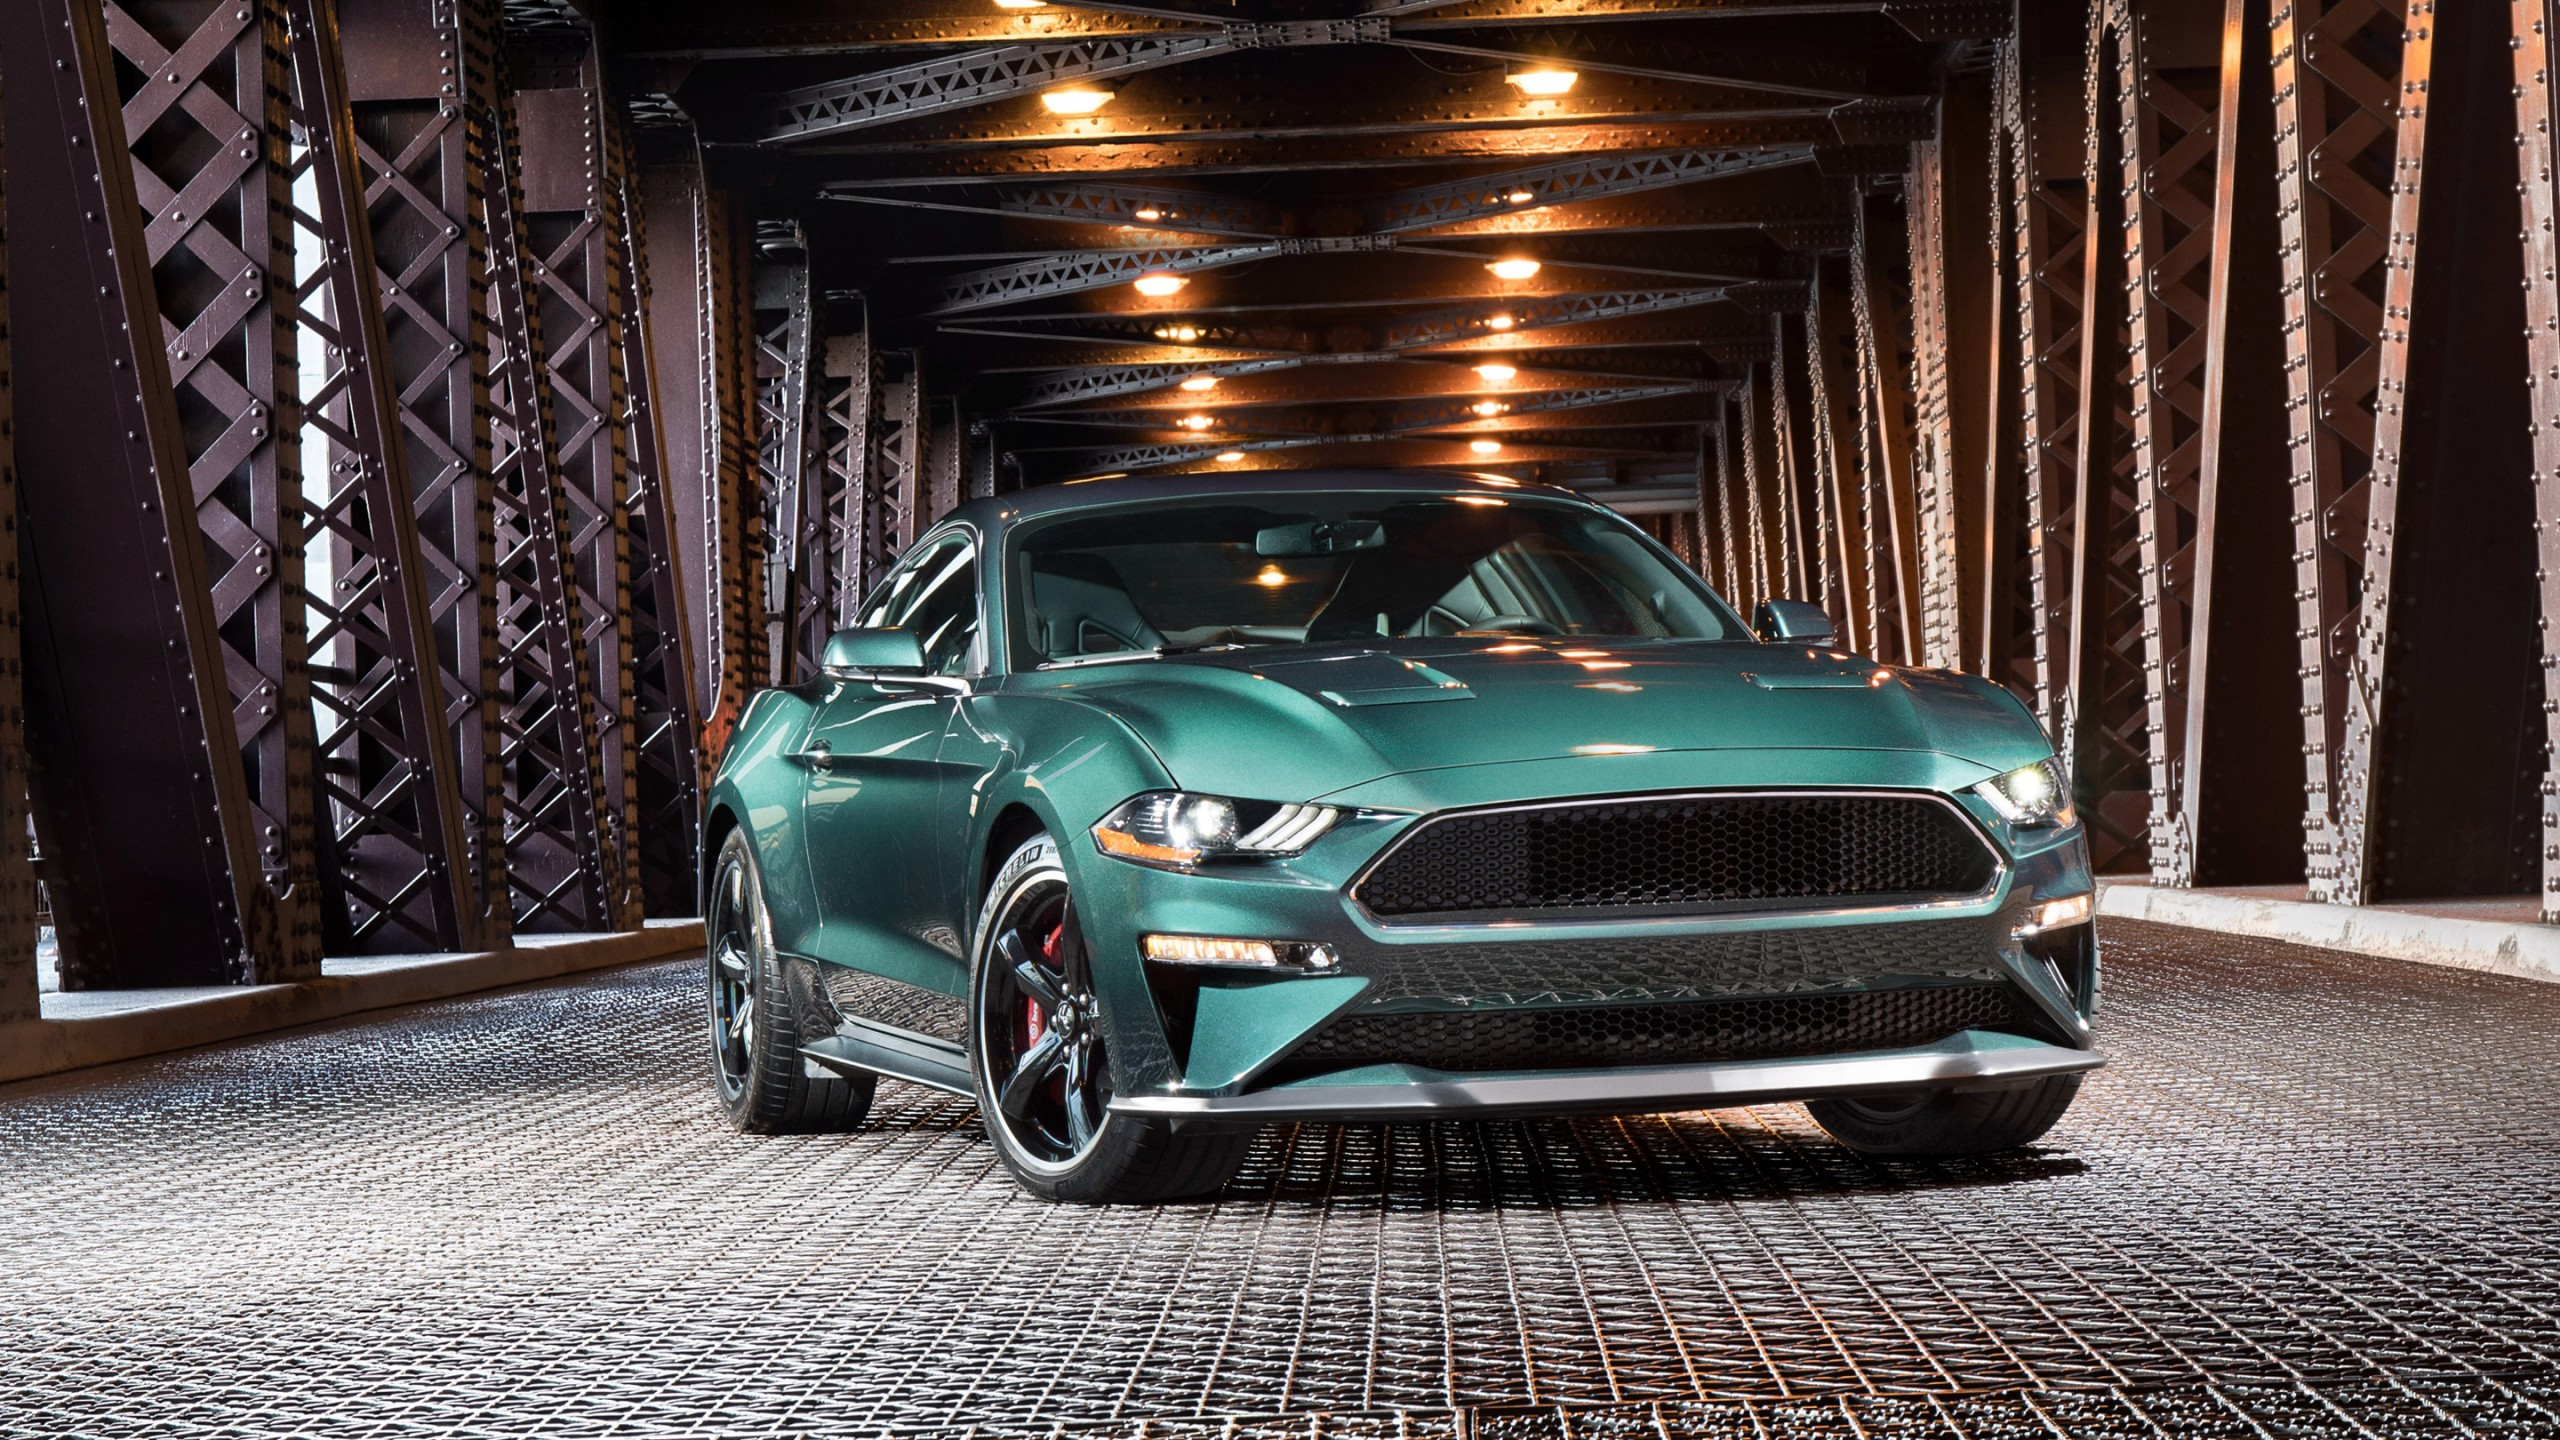 2019 Ford Mustang Bullitt Wallpaper | HD Car Wallpapers ...